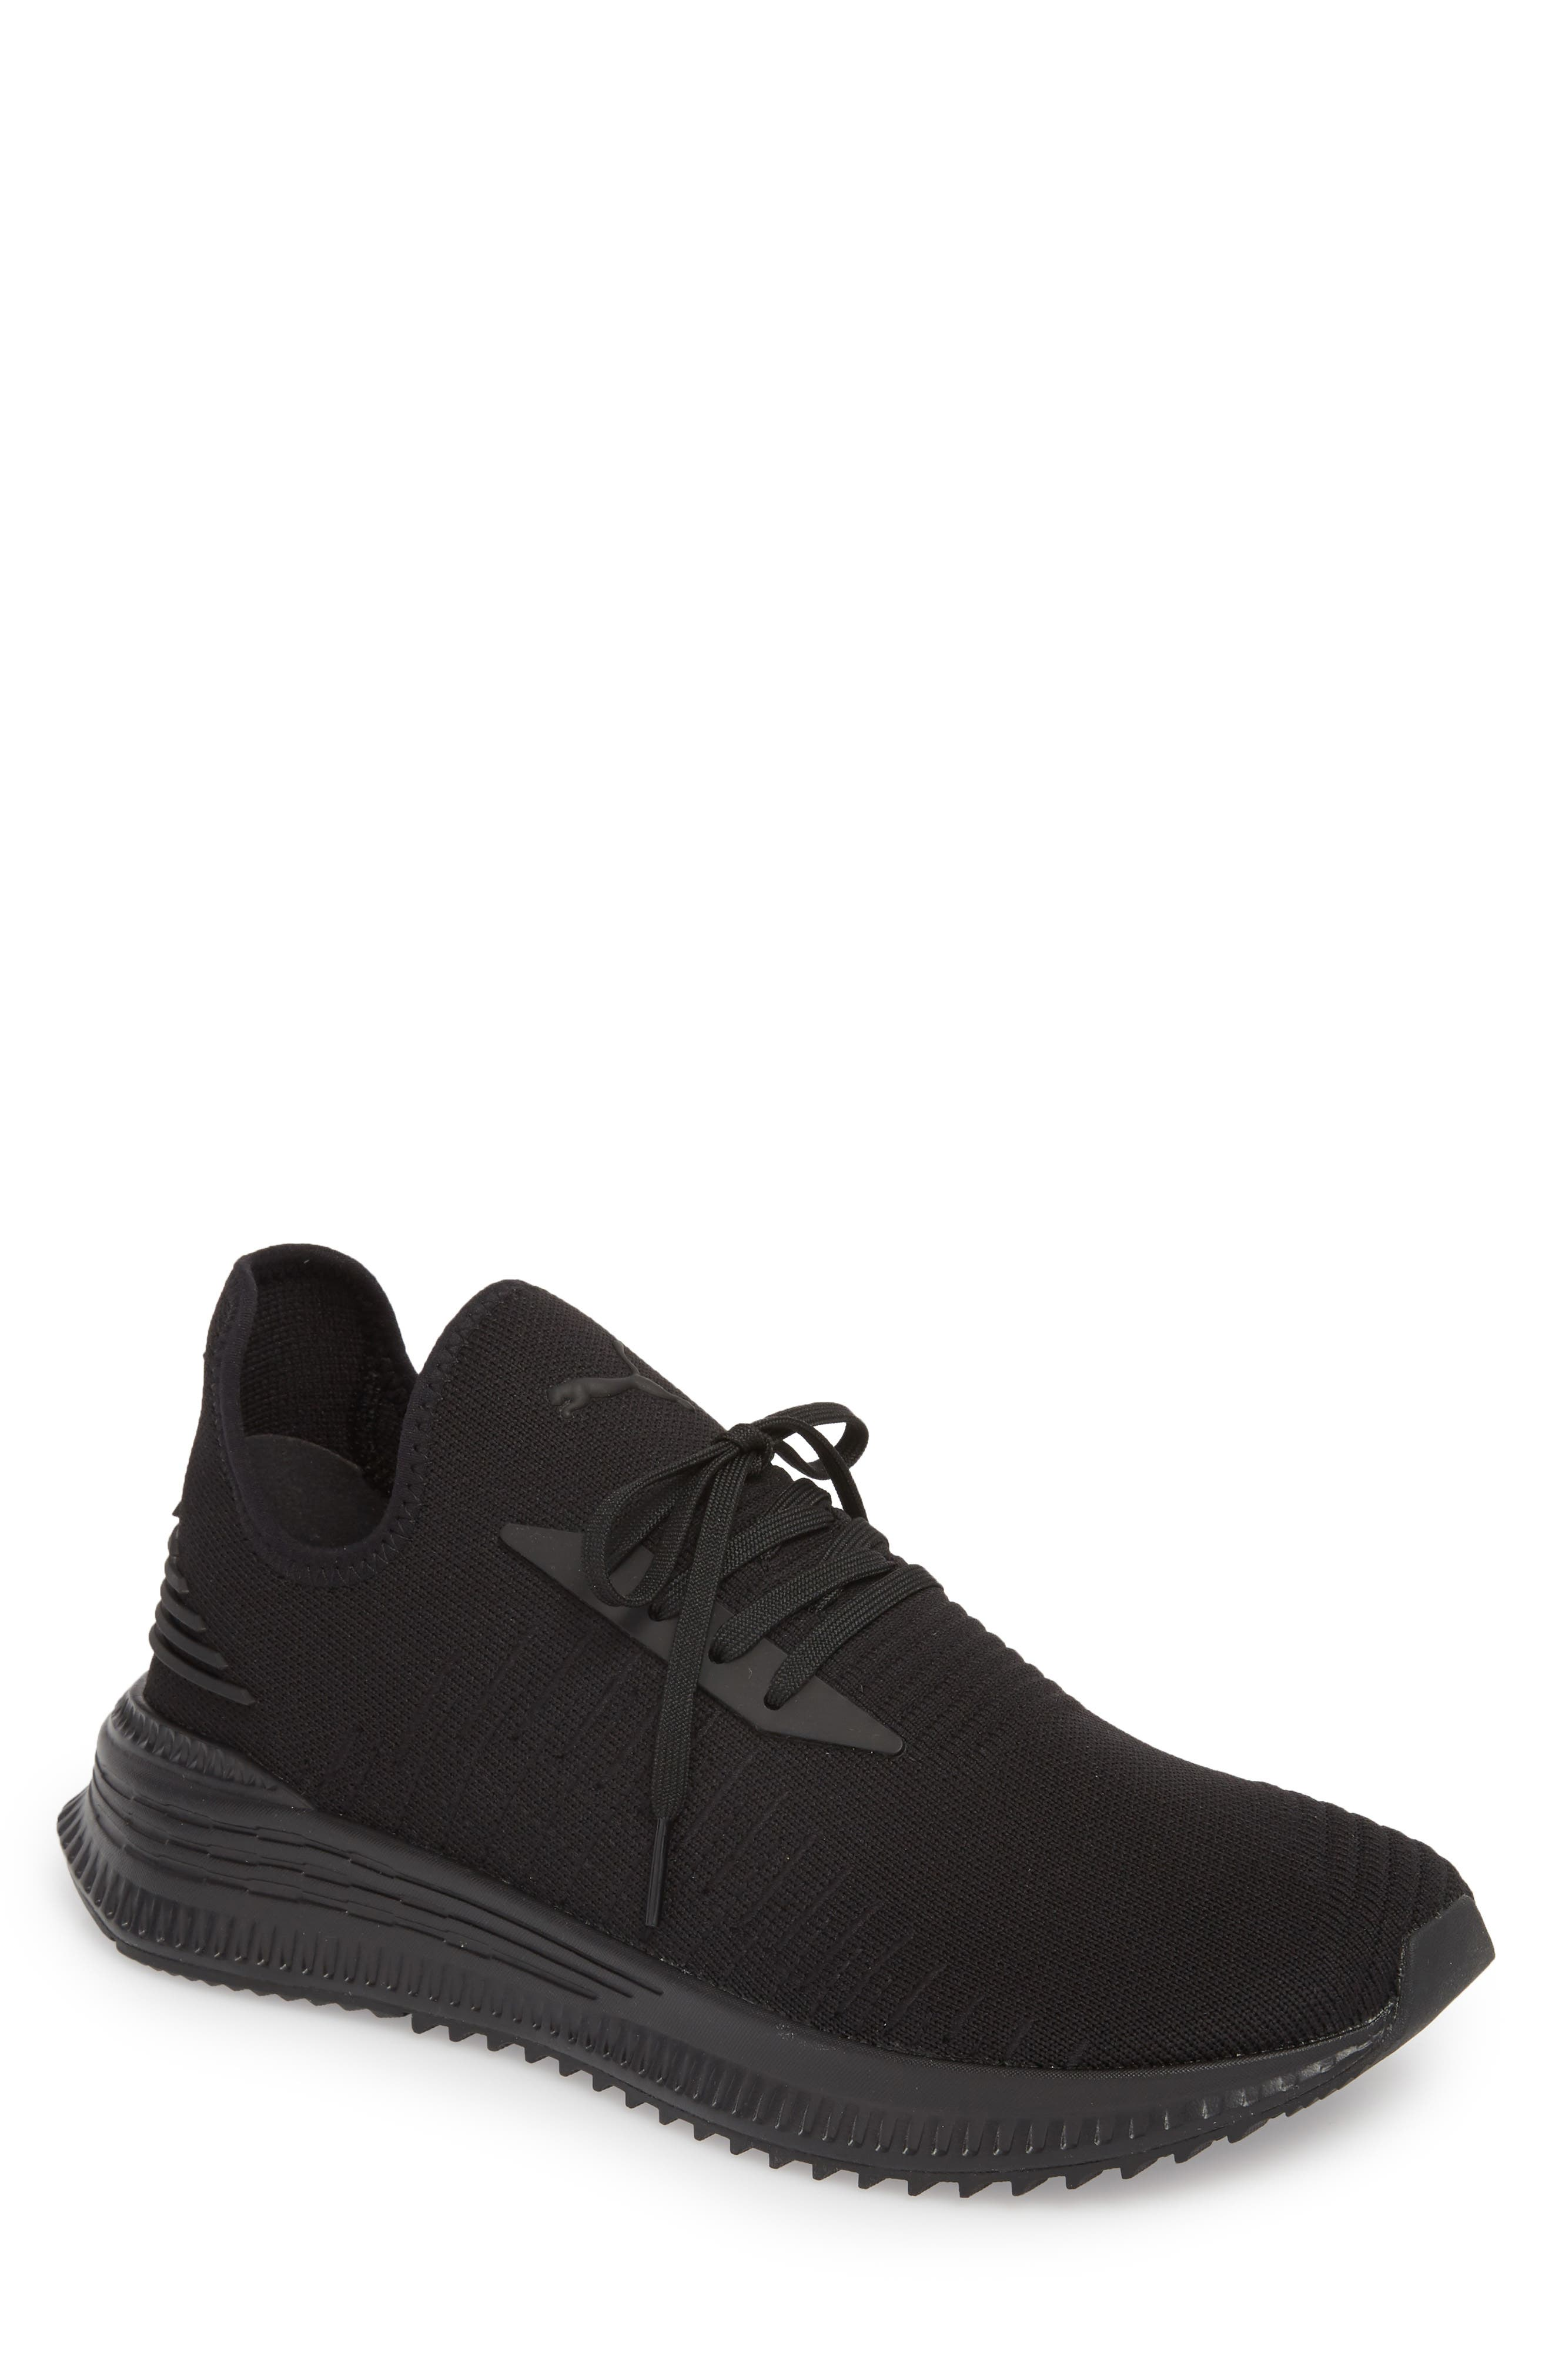 AVID evoKNIT Sneaker,                         Main,                         color, Black/ Black